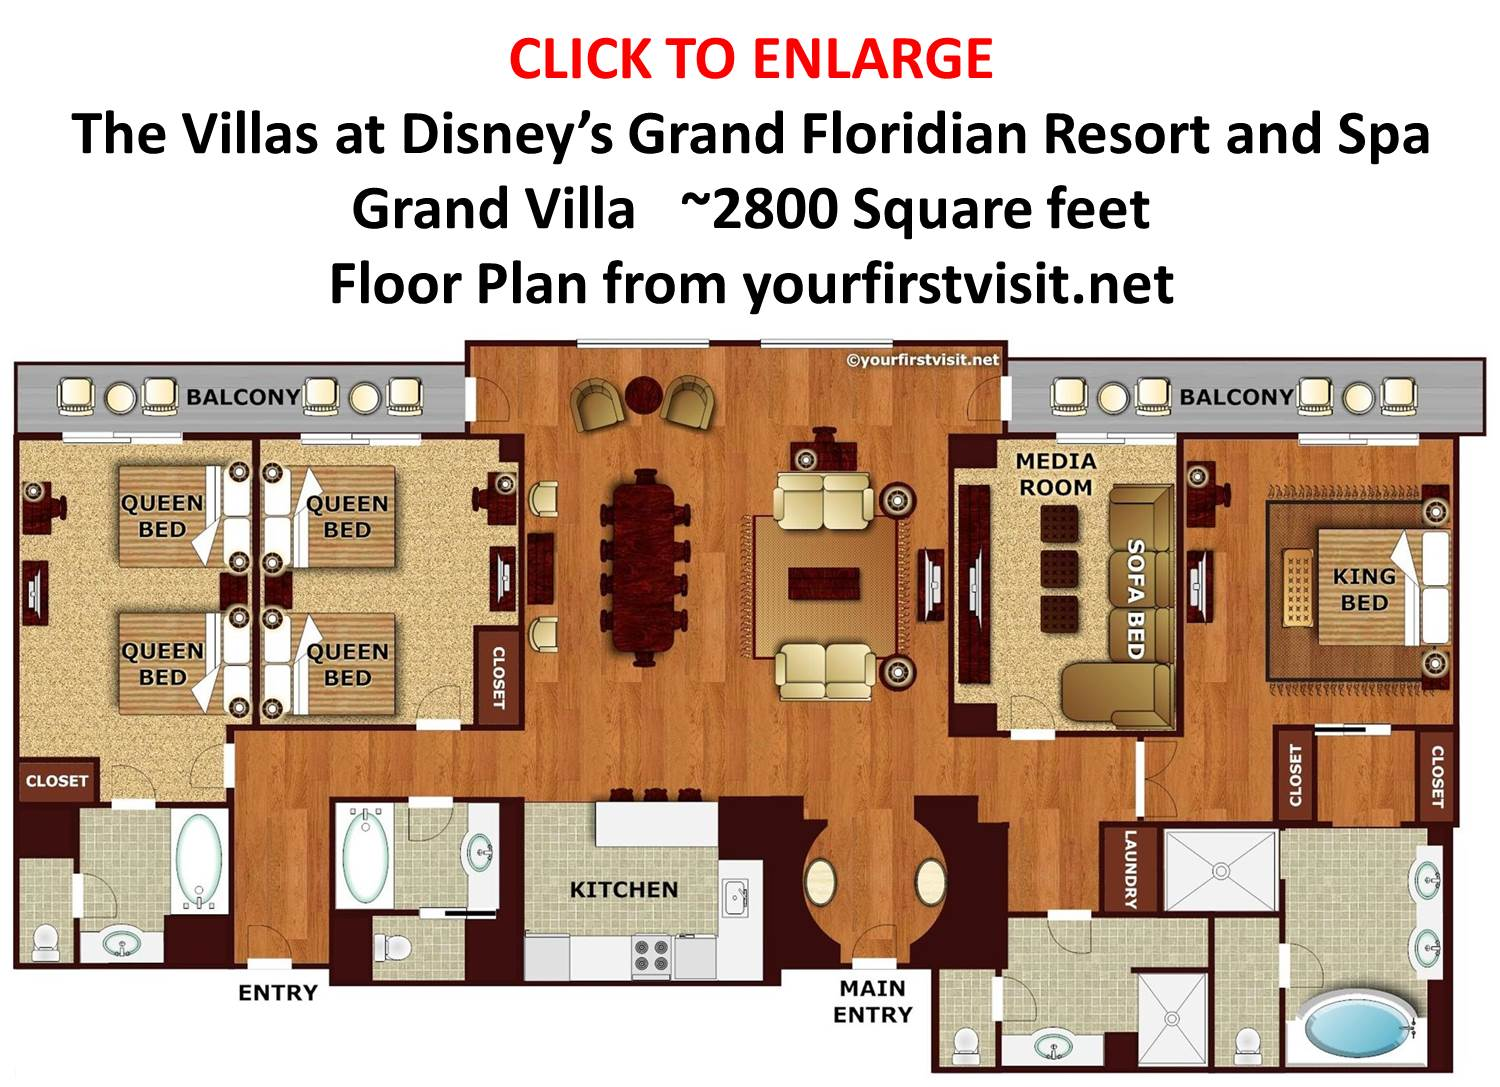 Disney Old Key West One Bedroom Villa likewise The Disney Vacation Club Dvc Resorts At Walt Disney World besides Floor Plan Grand Villa At Disneys Grand Floridian From Yourfirstvisit furthermore Studiosecond Bedroom Spaces At Disneys Old Key West Resort further Disneys Old Key West Resort 1 Bedroom Disney Vacation Club Review. on old key west 2 bedroom villa floor plan